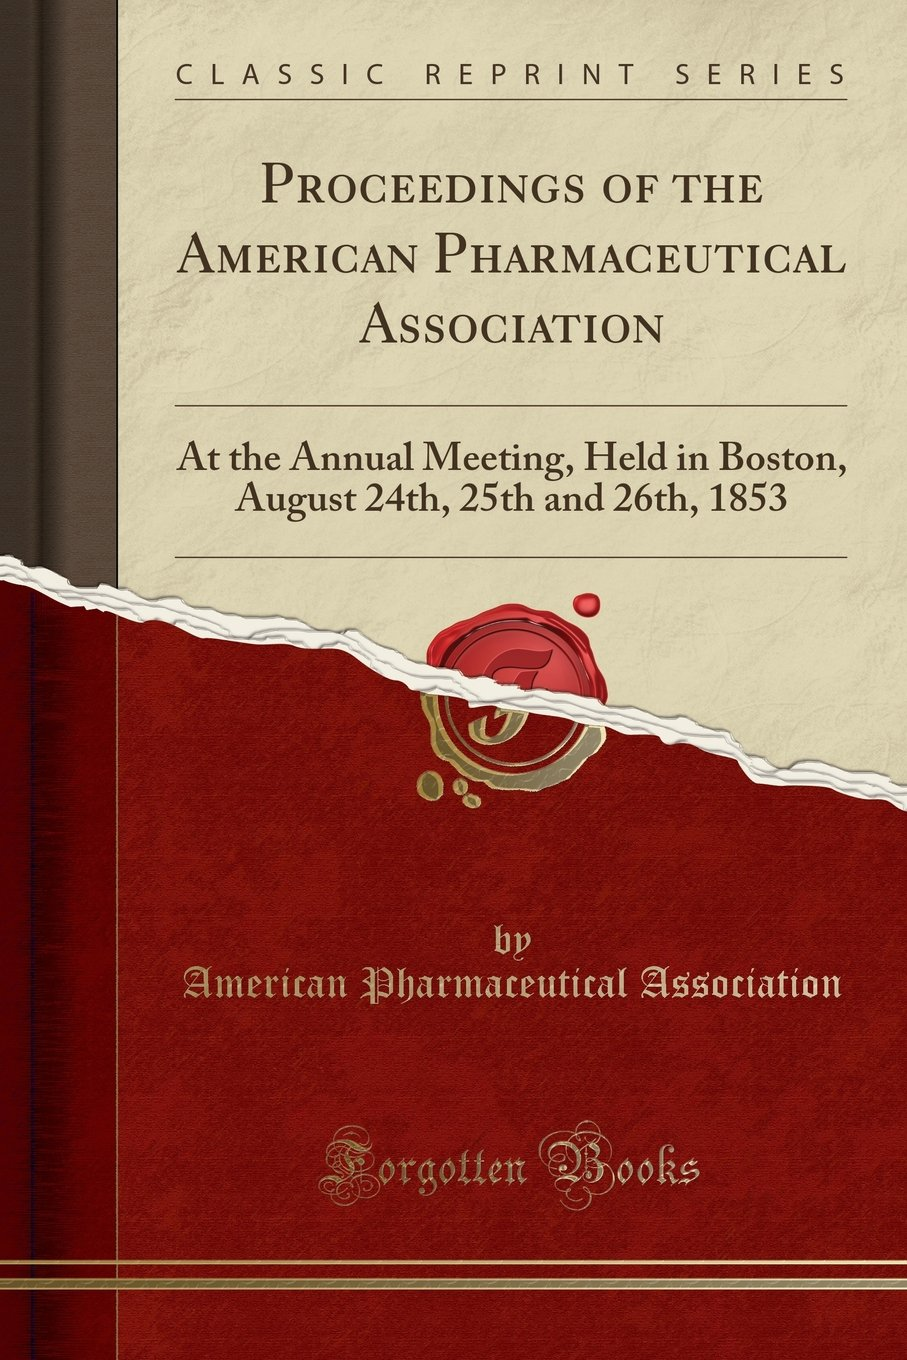 Proceedings of the American Pharmaceutical Association: At the Annual Meeting, Held in Boston, August 24th, 25th and 26th, 1853 (Classic Reprint) pdf epub